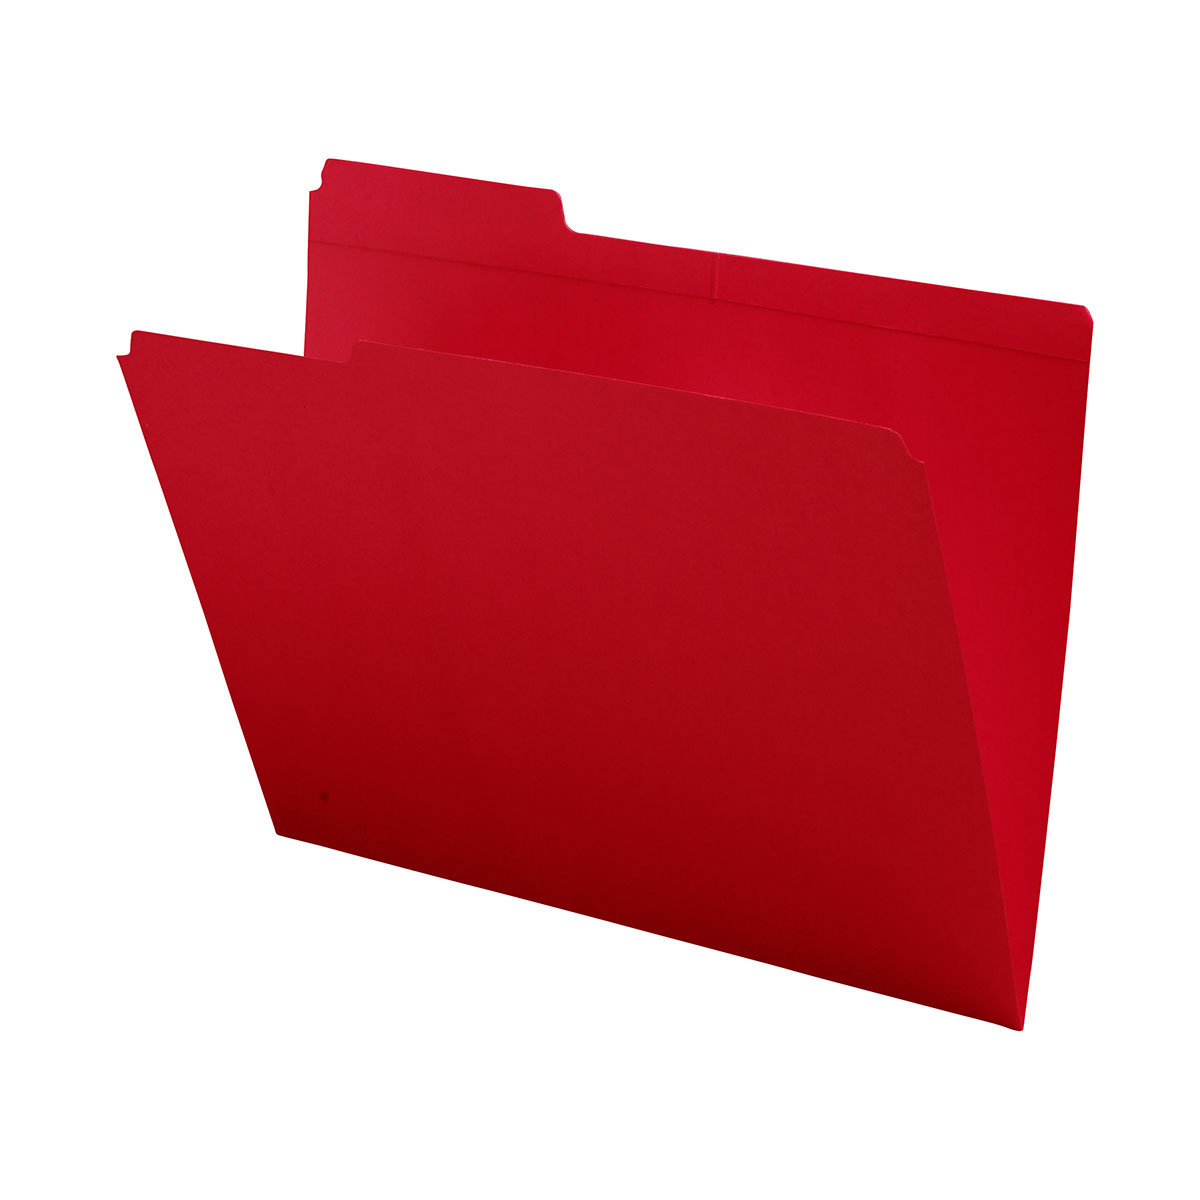 S-9043-RED - 11 pt Red Folders, 1/3 Cut Reinforced Top Tab - Assorted, Letter Size (Box of 100)